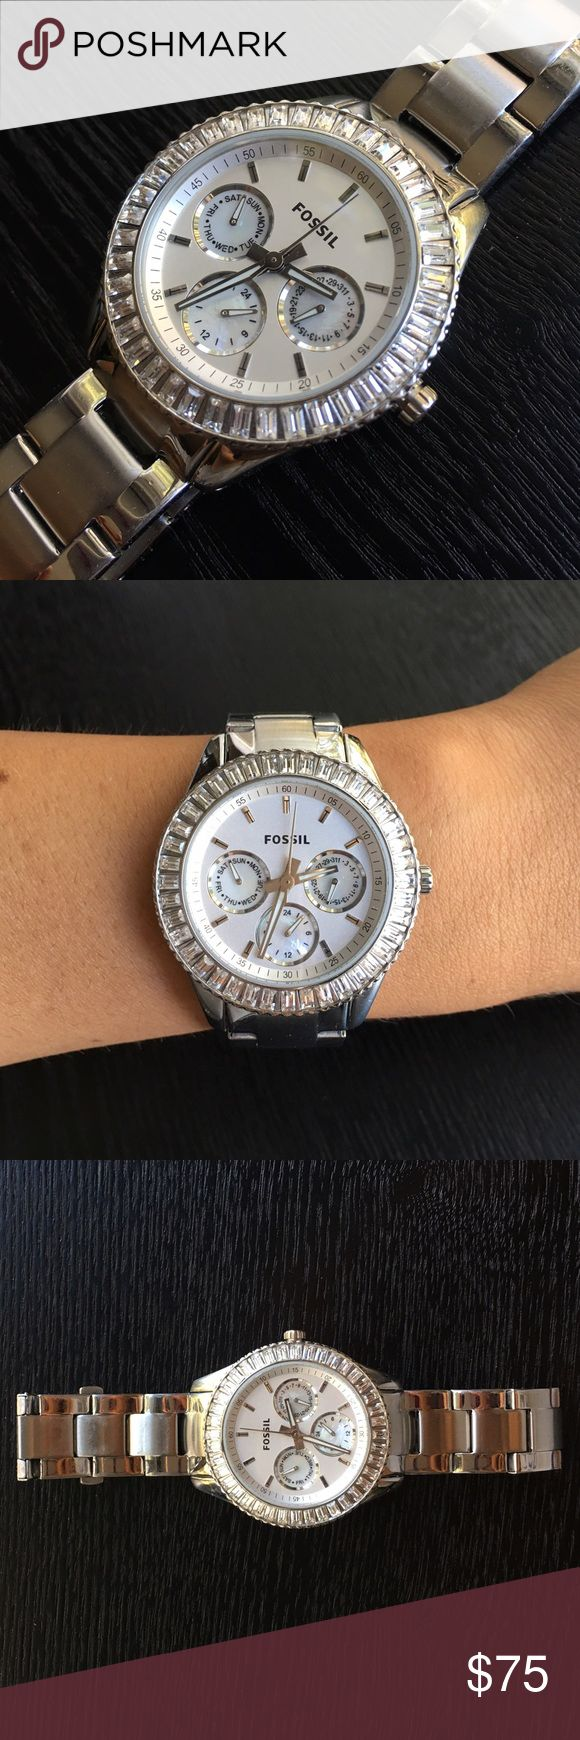 Women's Fossil Watch Pre-loved women's Fossil watch. Shiny silver & stainless steel. Chronograph are mother of pearl. Minor scratches from wear, nothing noticeable. Needs replacement battery. No extra links. Fossil Accessories Watches